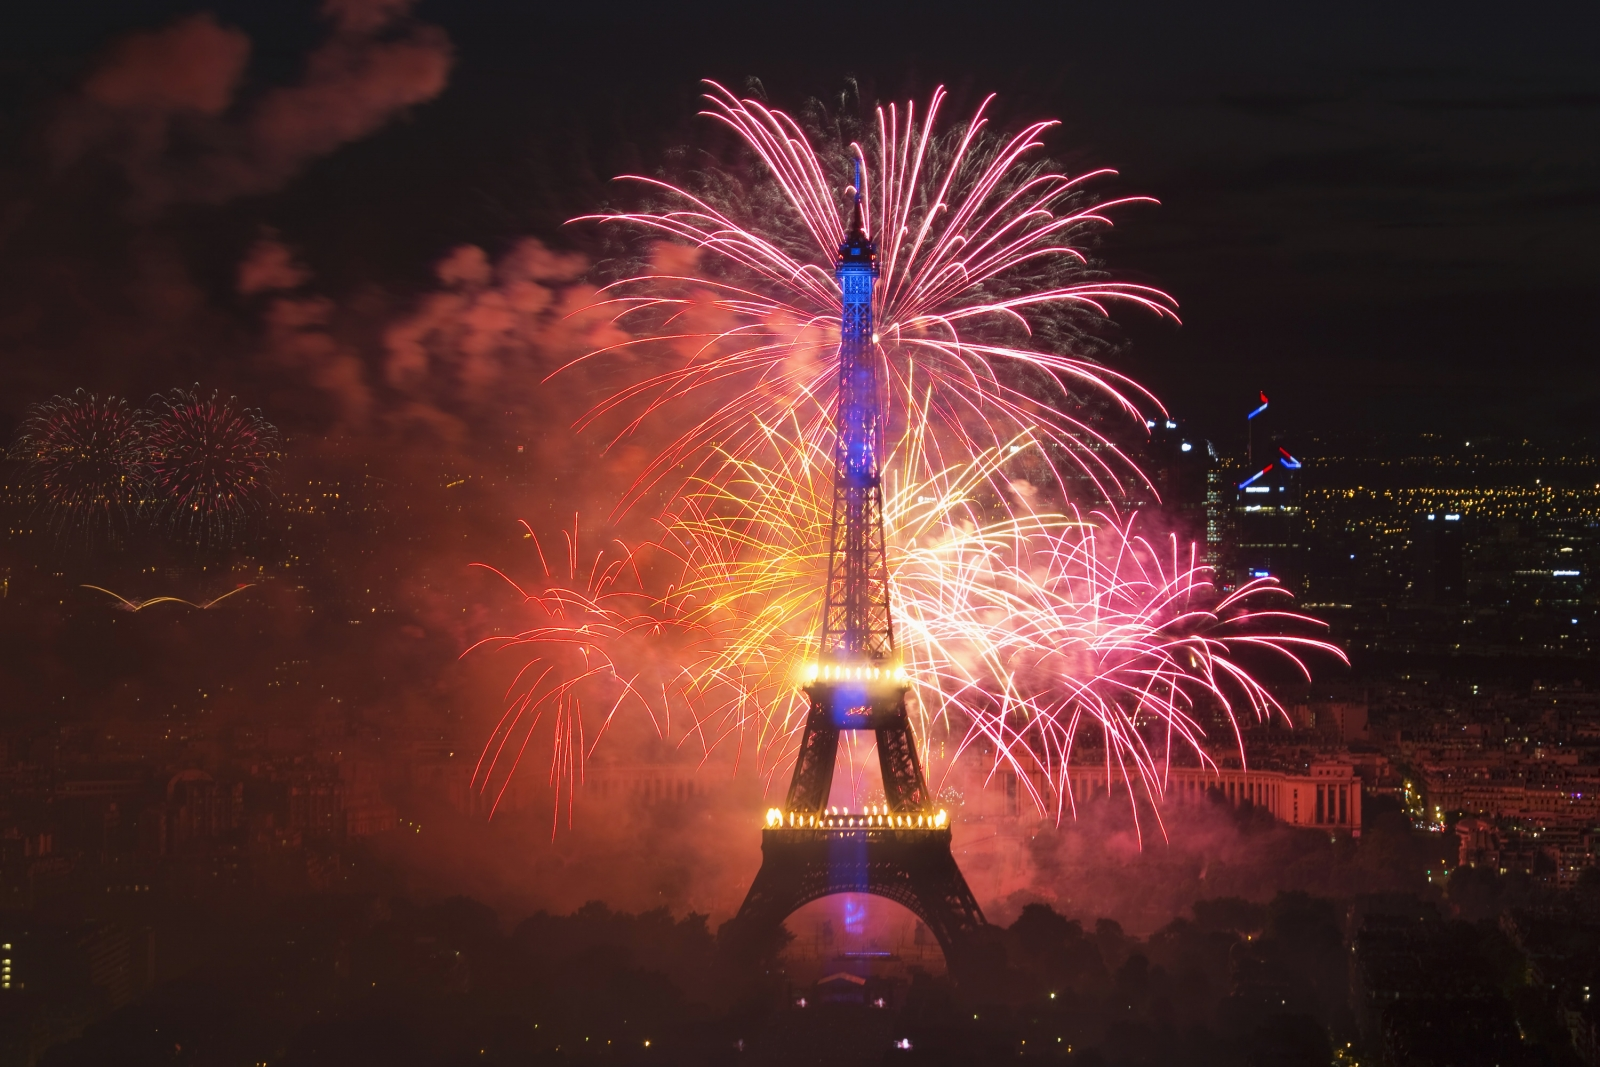 Paris ranked third place in the study, while Singapore, Tokyo, Hong Kong, Dubai, Beijing, Sydney and Los Angeles followed closely behind.